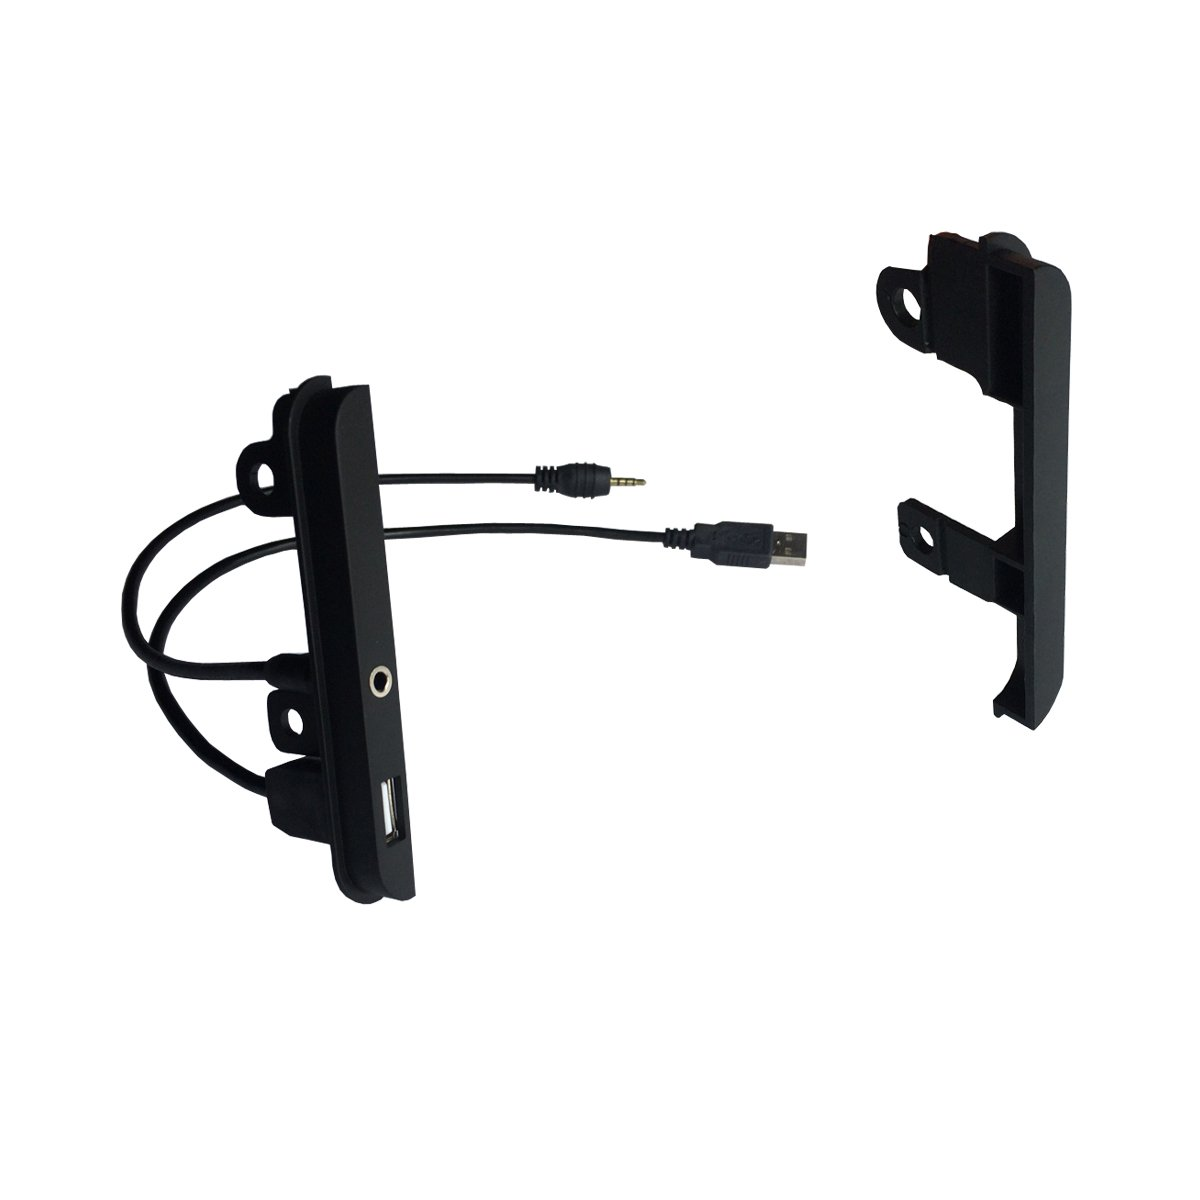 DKMUS Dash Kit for Toyota and Scion Vehicles Universal Brackets Double Din Installation Trim Bezel (with AUX & USB)